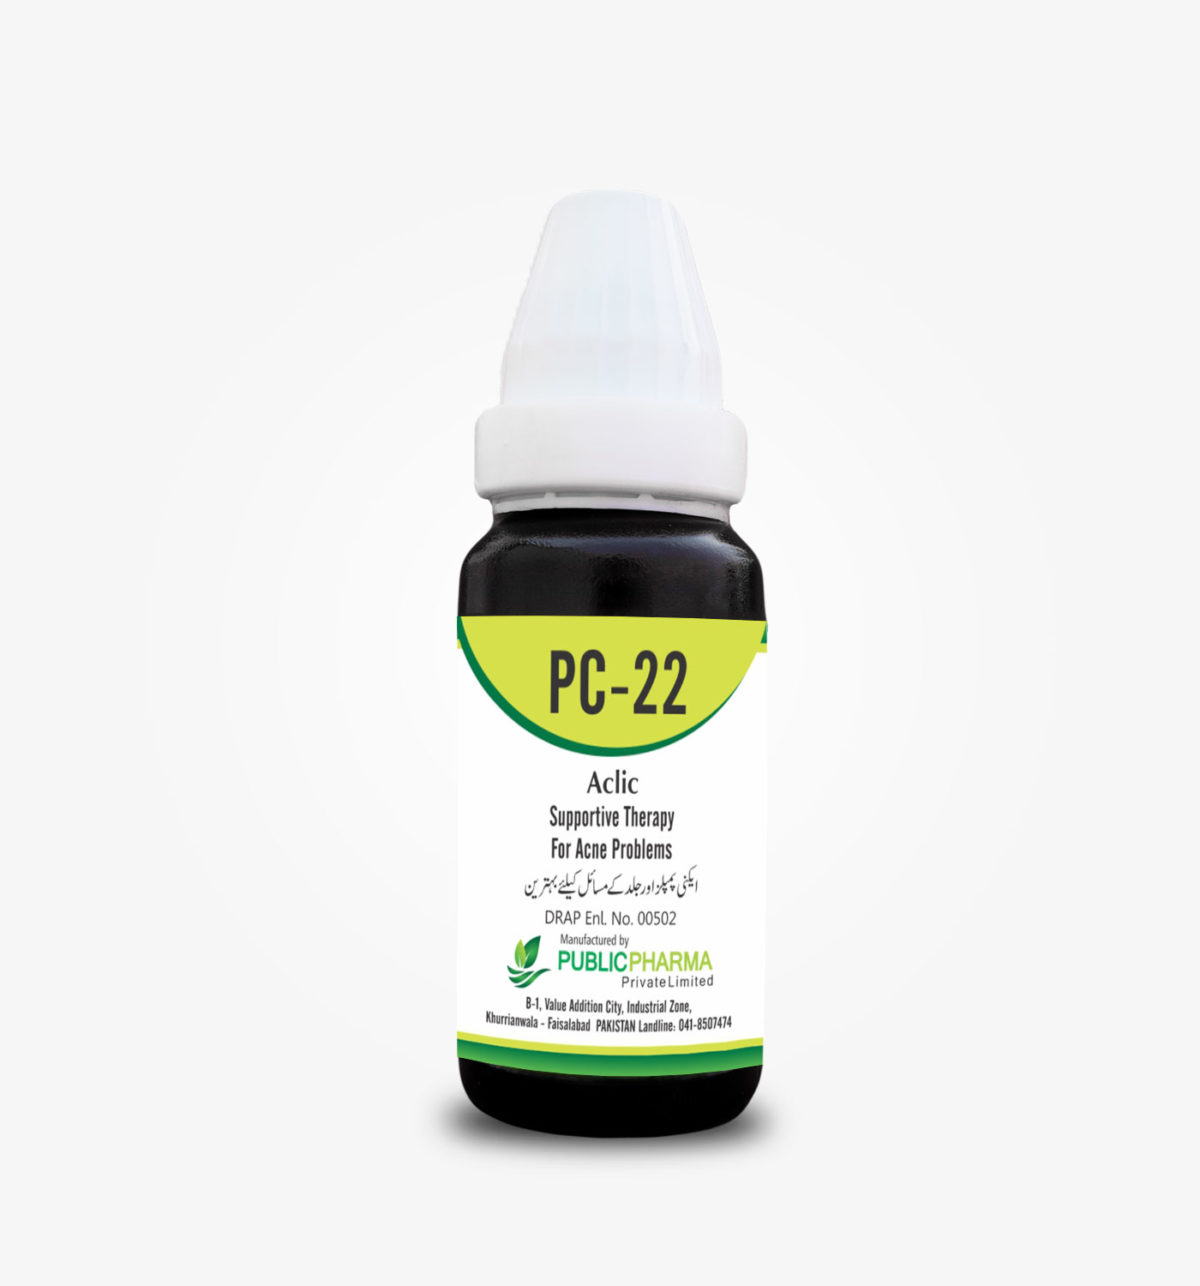 Helpful for treatment of a wide variety of skin diseases including acne,psoriasis, eczema, herpes, herpes zoster,itching dermatitis, impetigo, carbuncles and furncles.